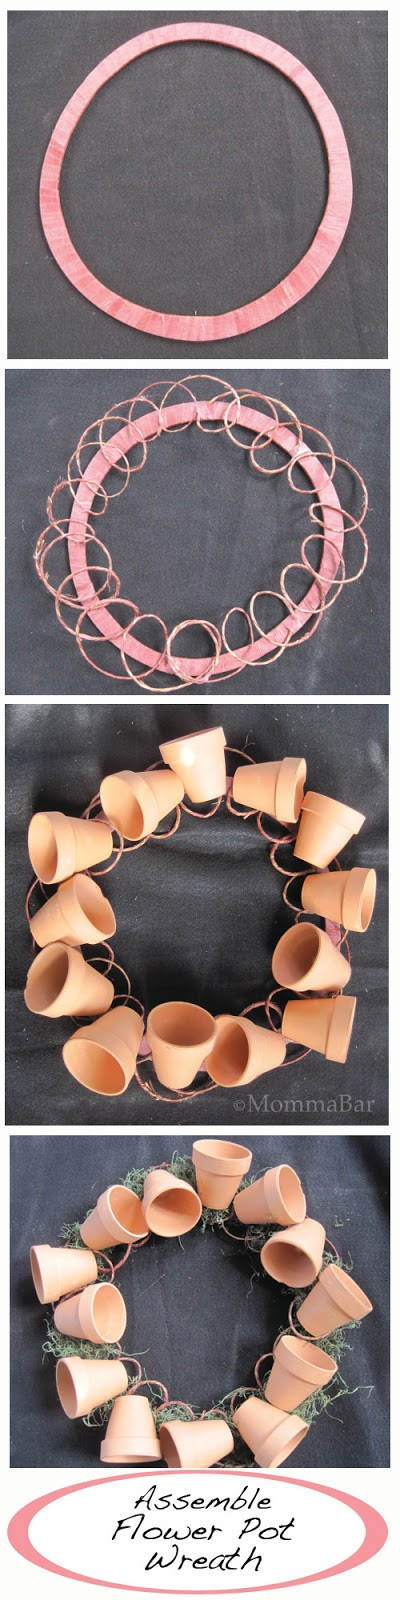 Assemble Flower Pot Wreath | Featured on Tried & Twisted